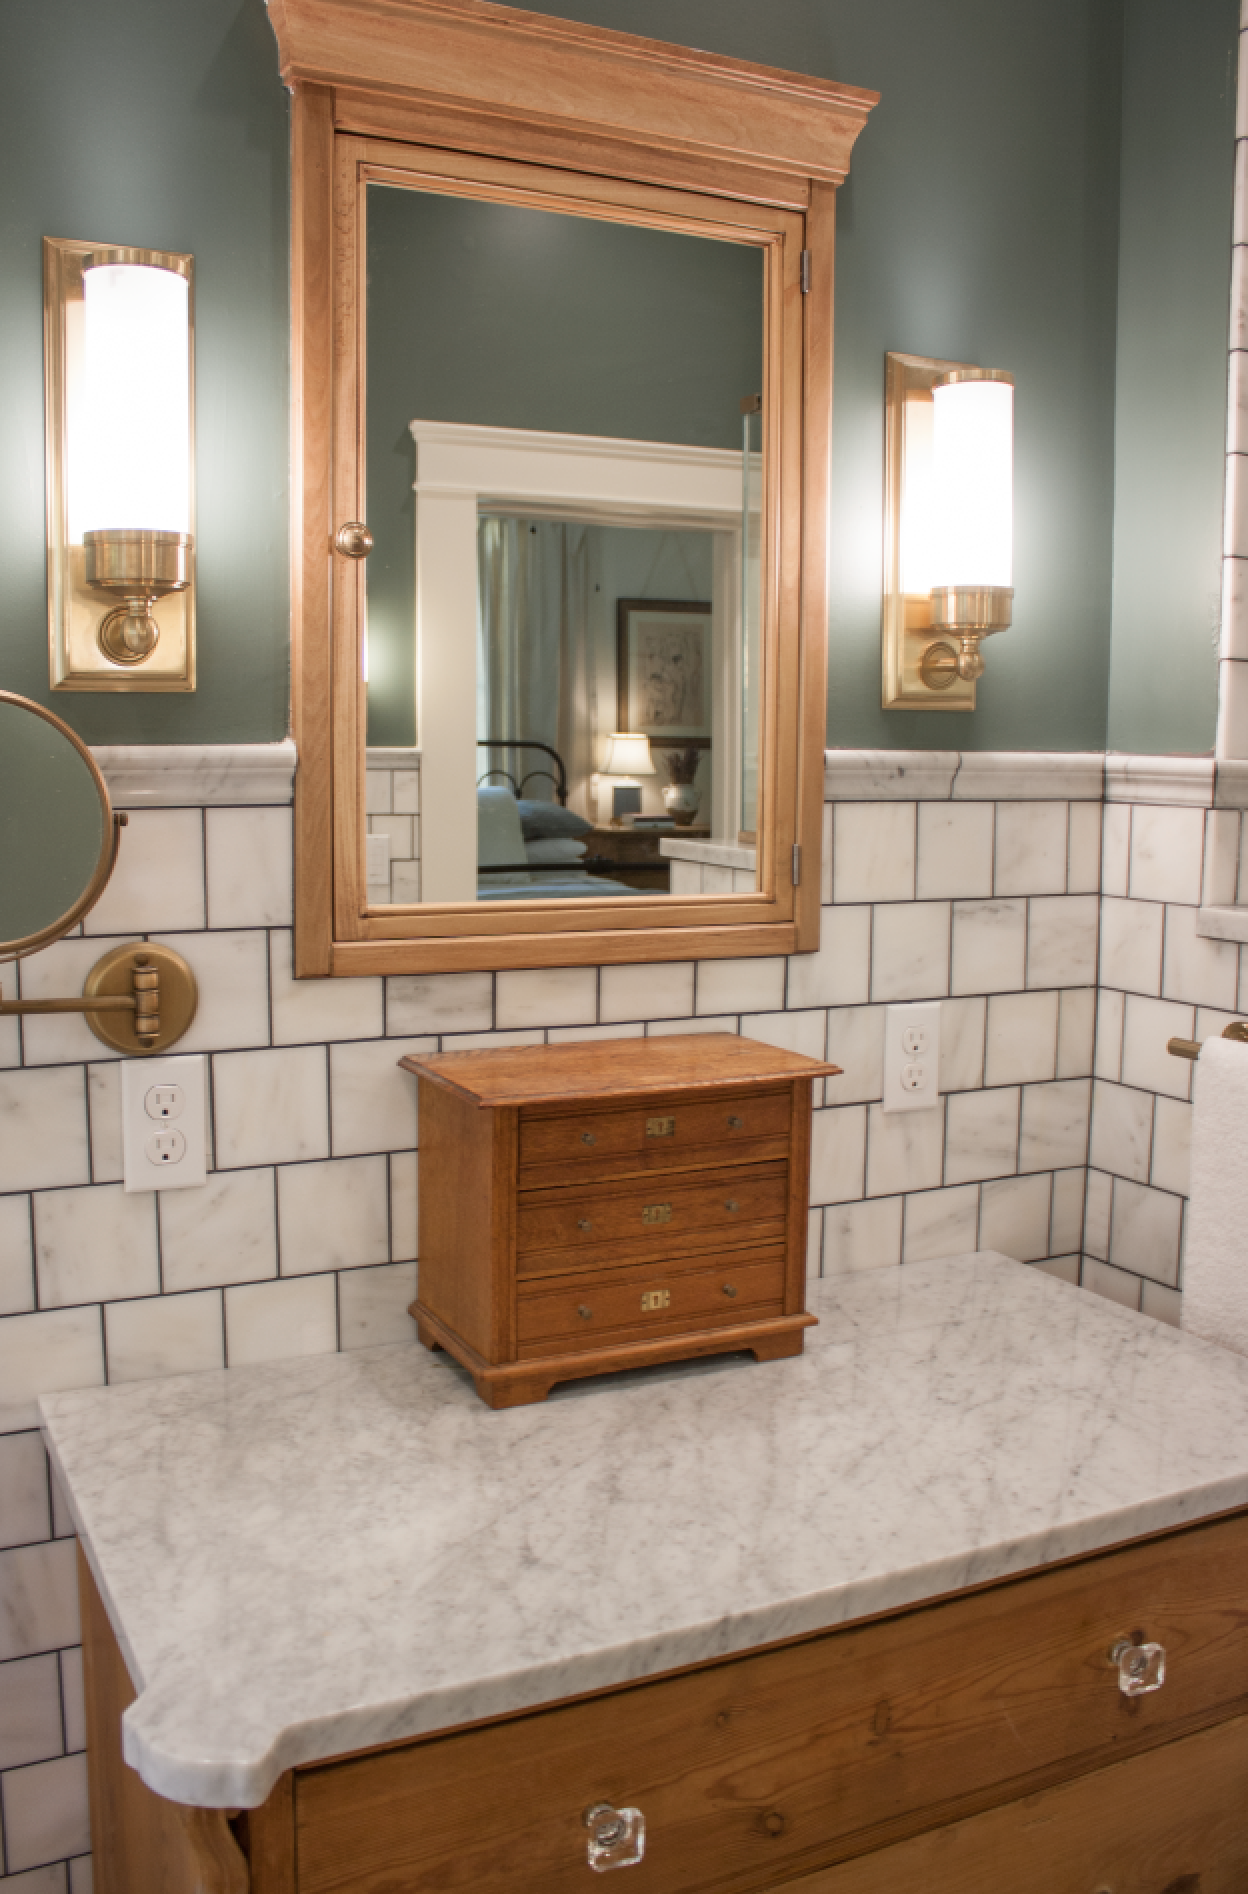 2,848 The New Bathroom. – Laurel Mercantile Co.